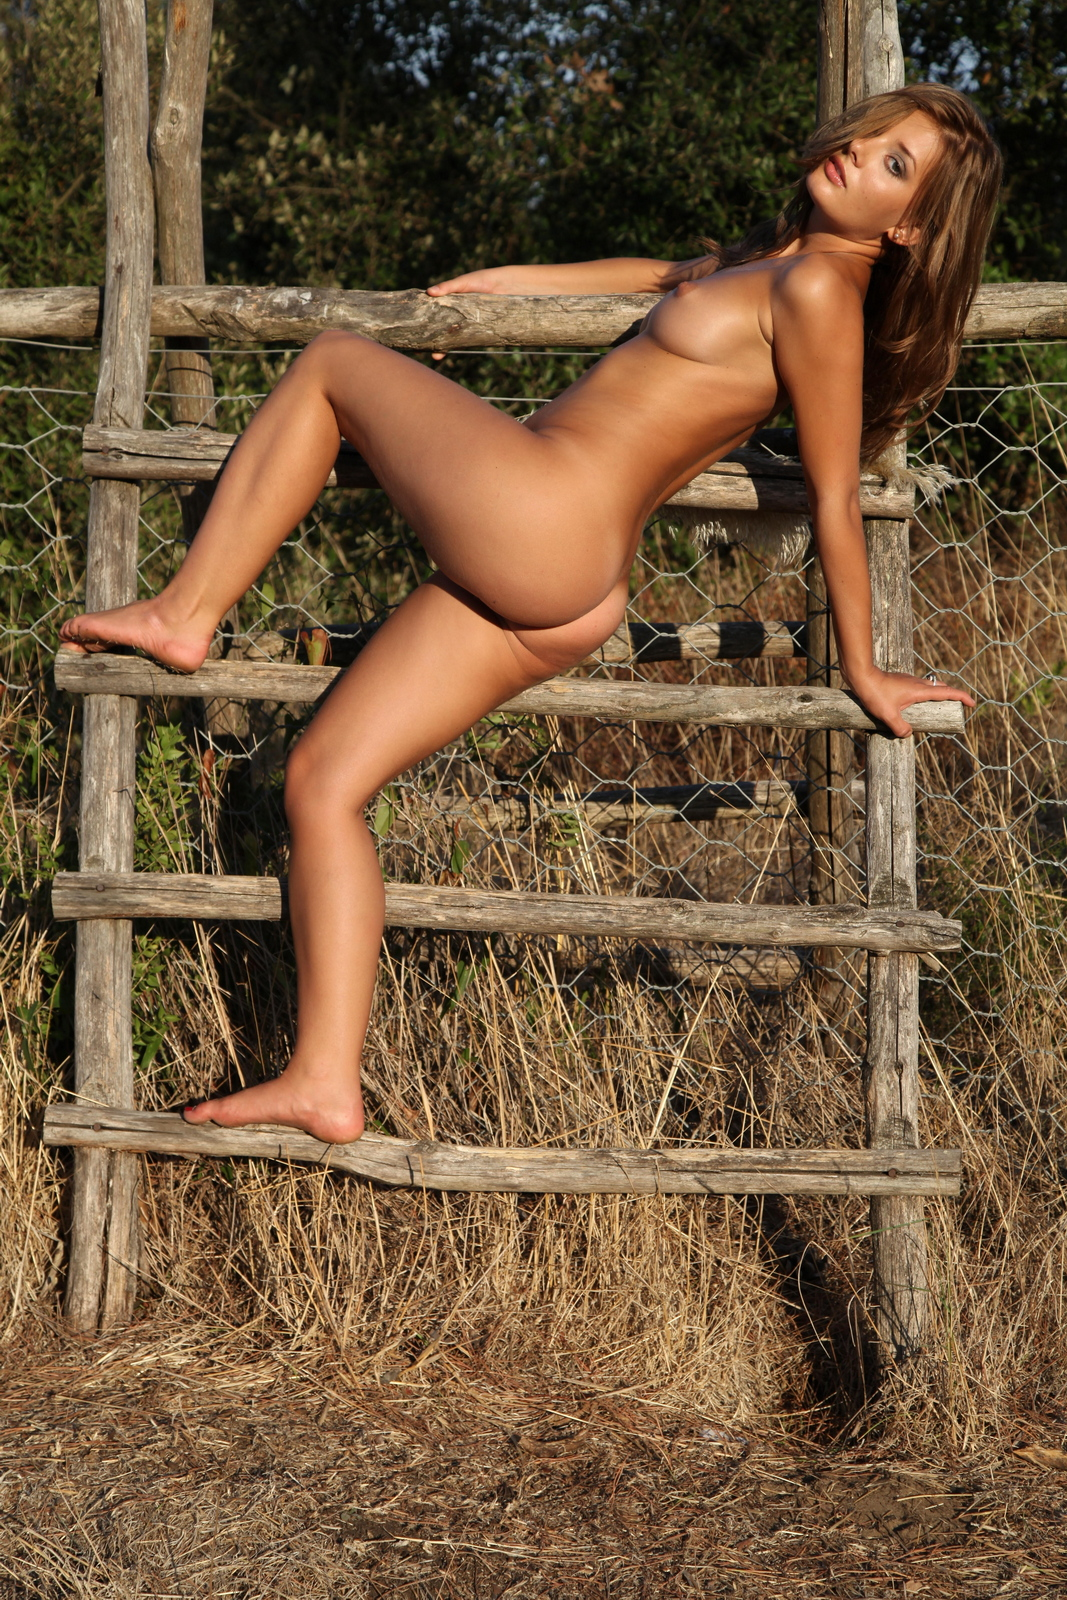 edwige-a-boobs-naked-outdoor-woods-metart-45